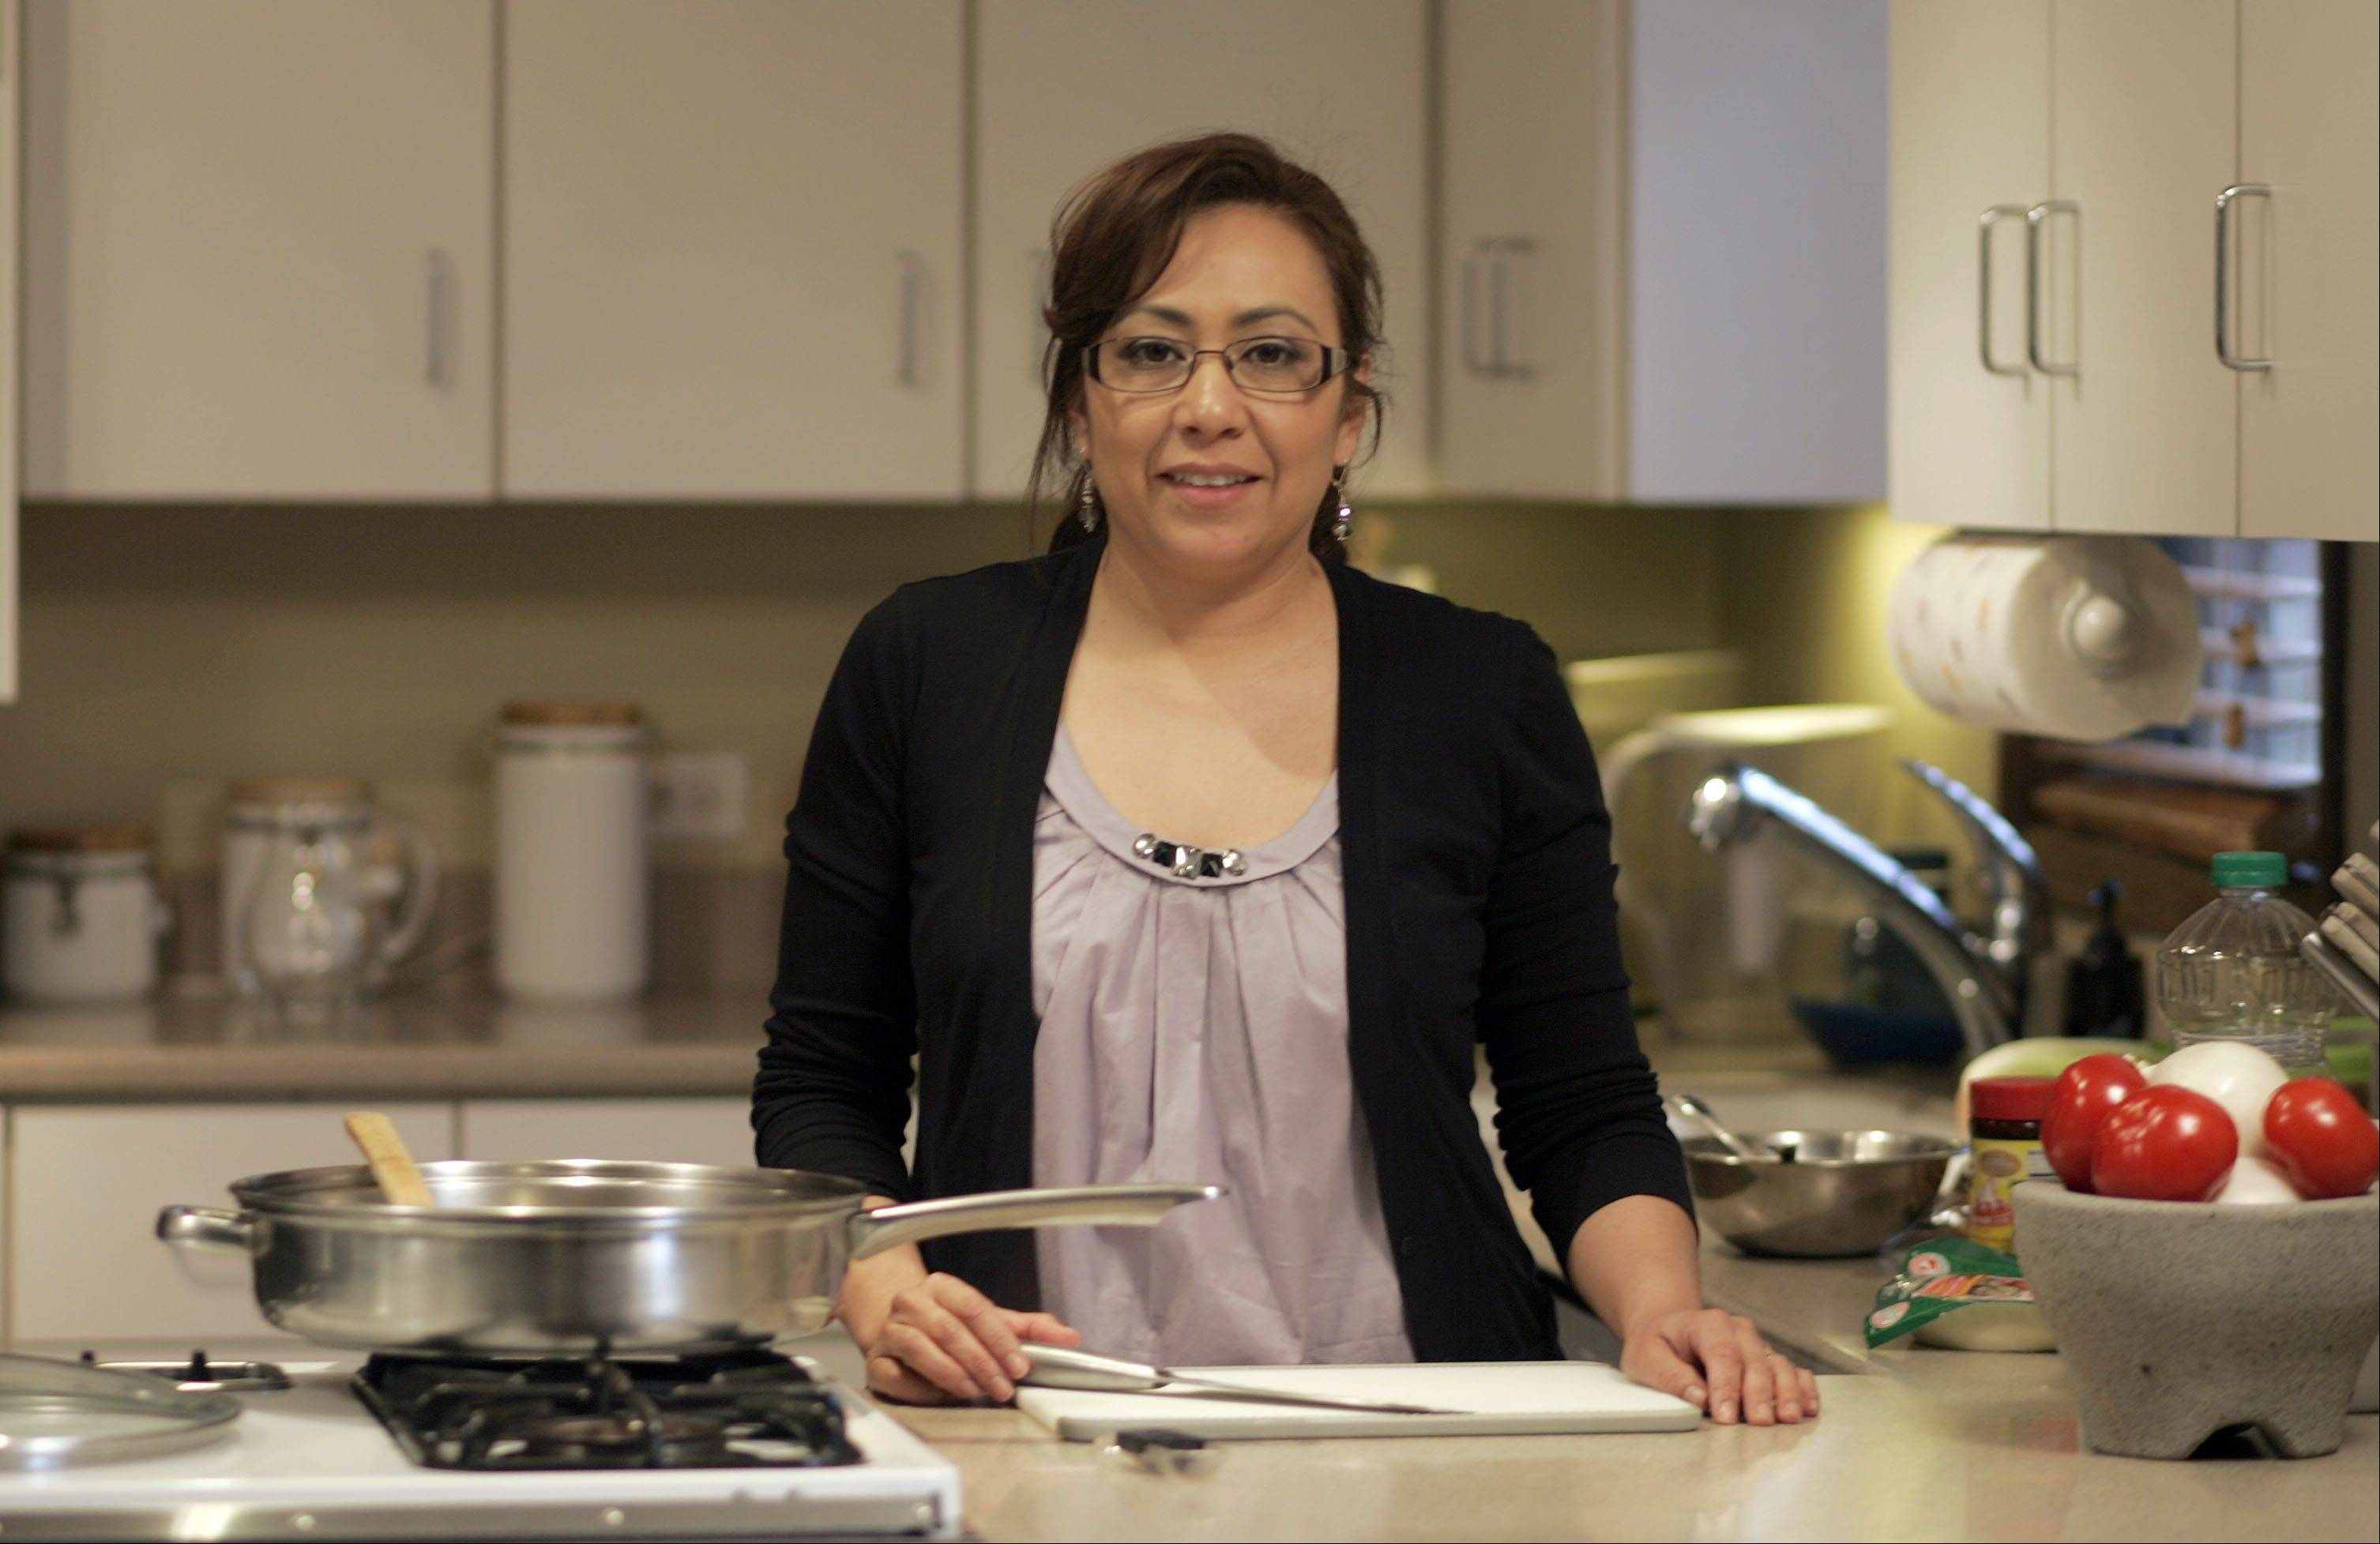 Yadira Soter creates authentic cuisine from her native Mexico in her St. Charles kitchen.